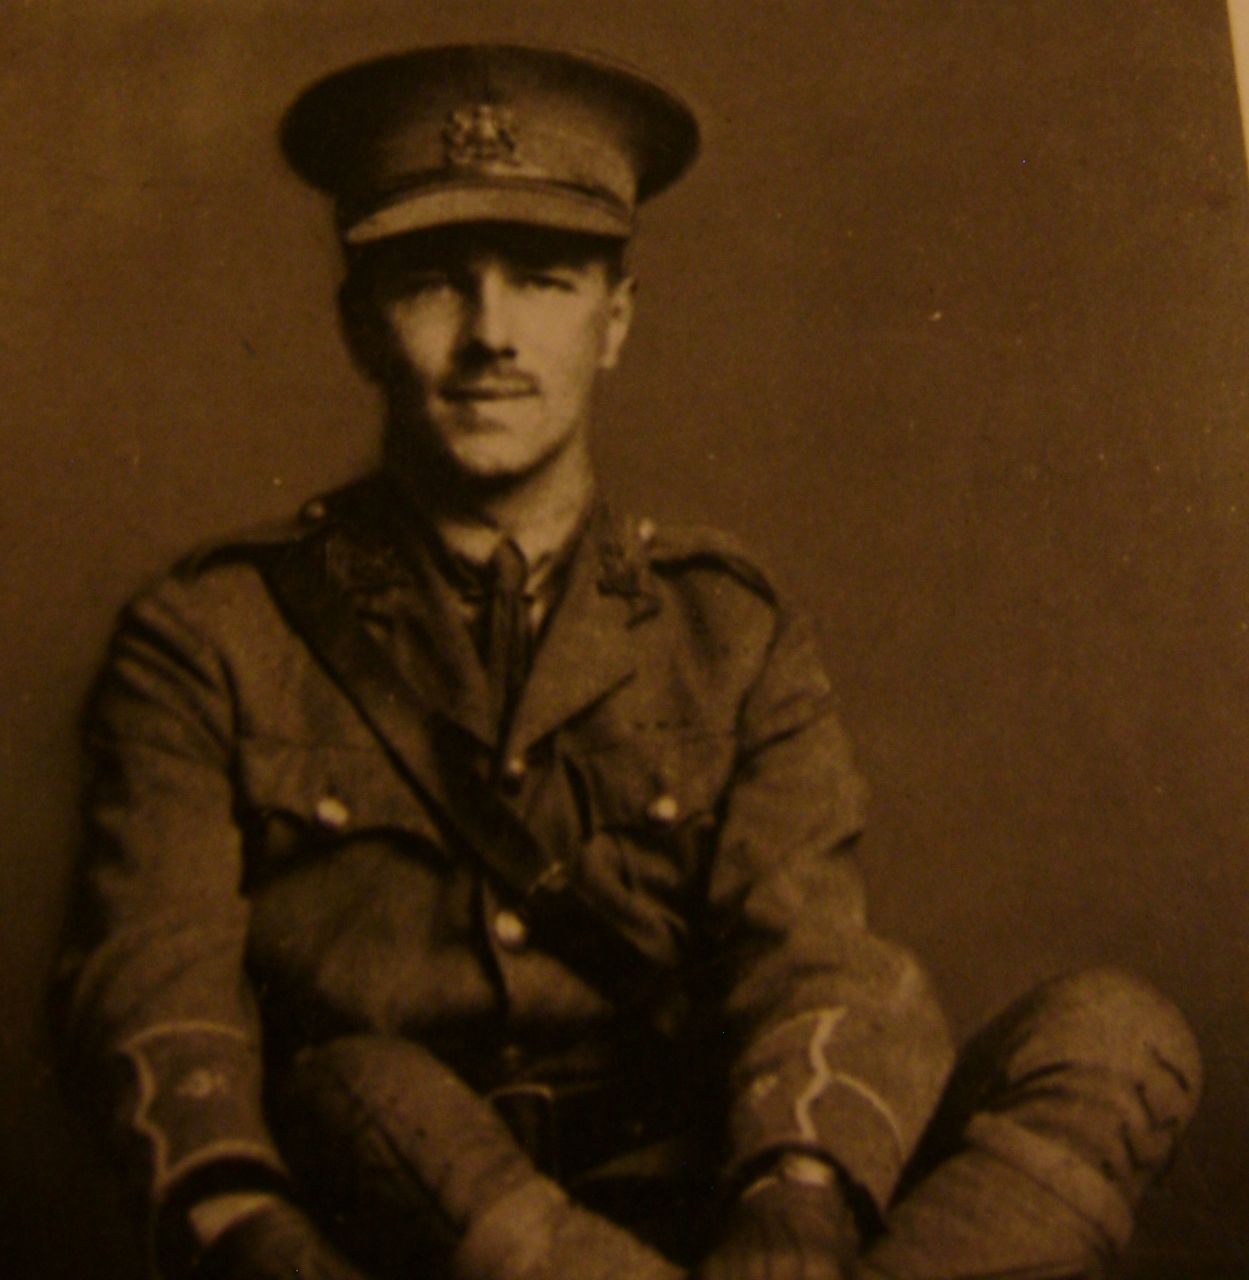 a description of wilfred owen as a famous british war poet in world war i